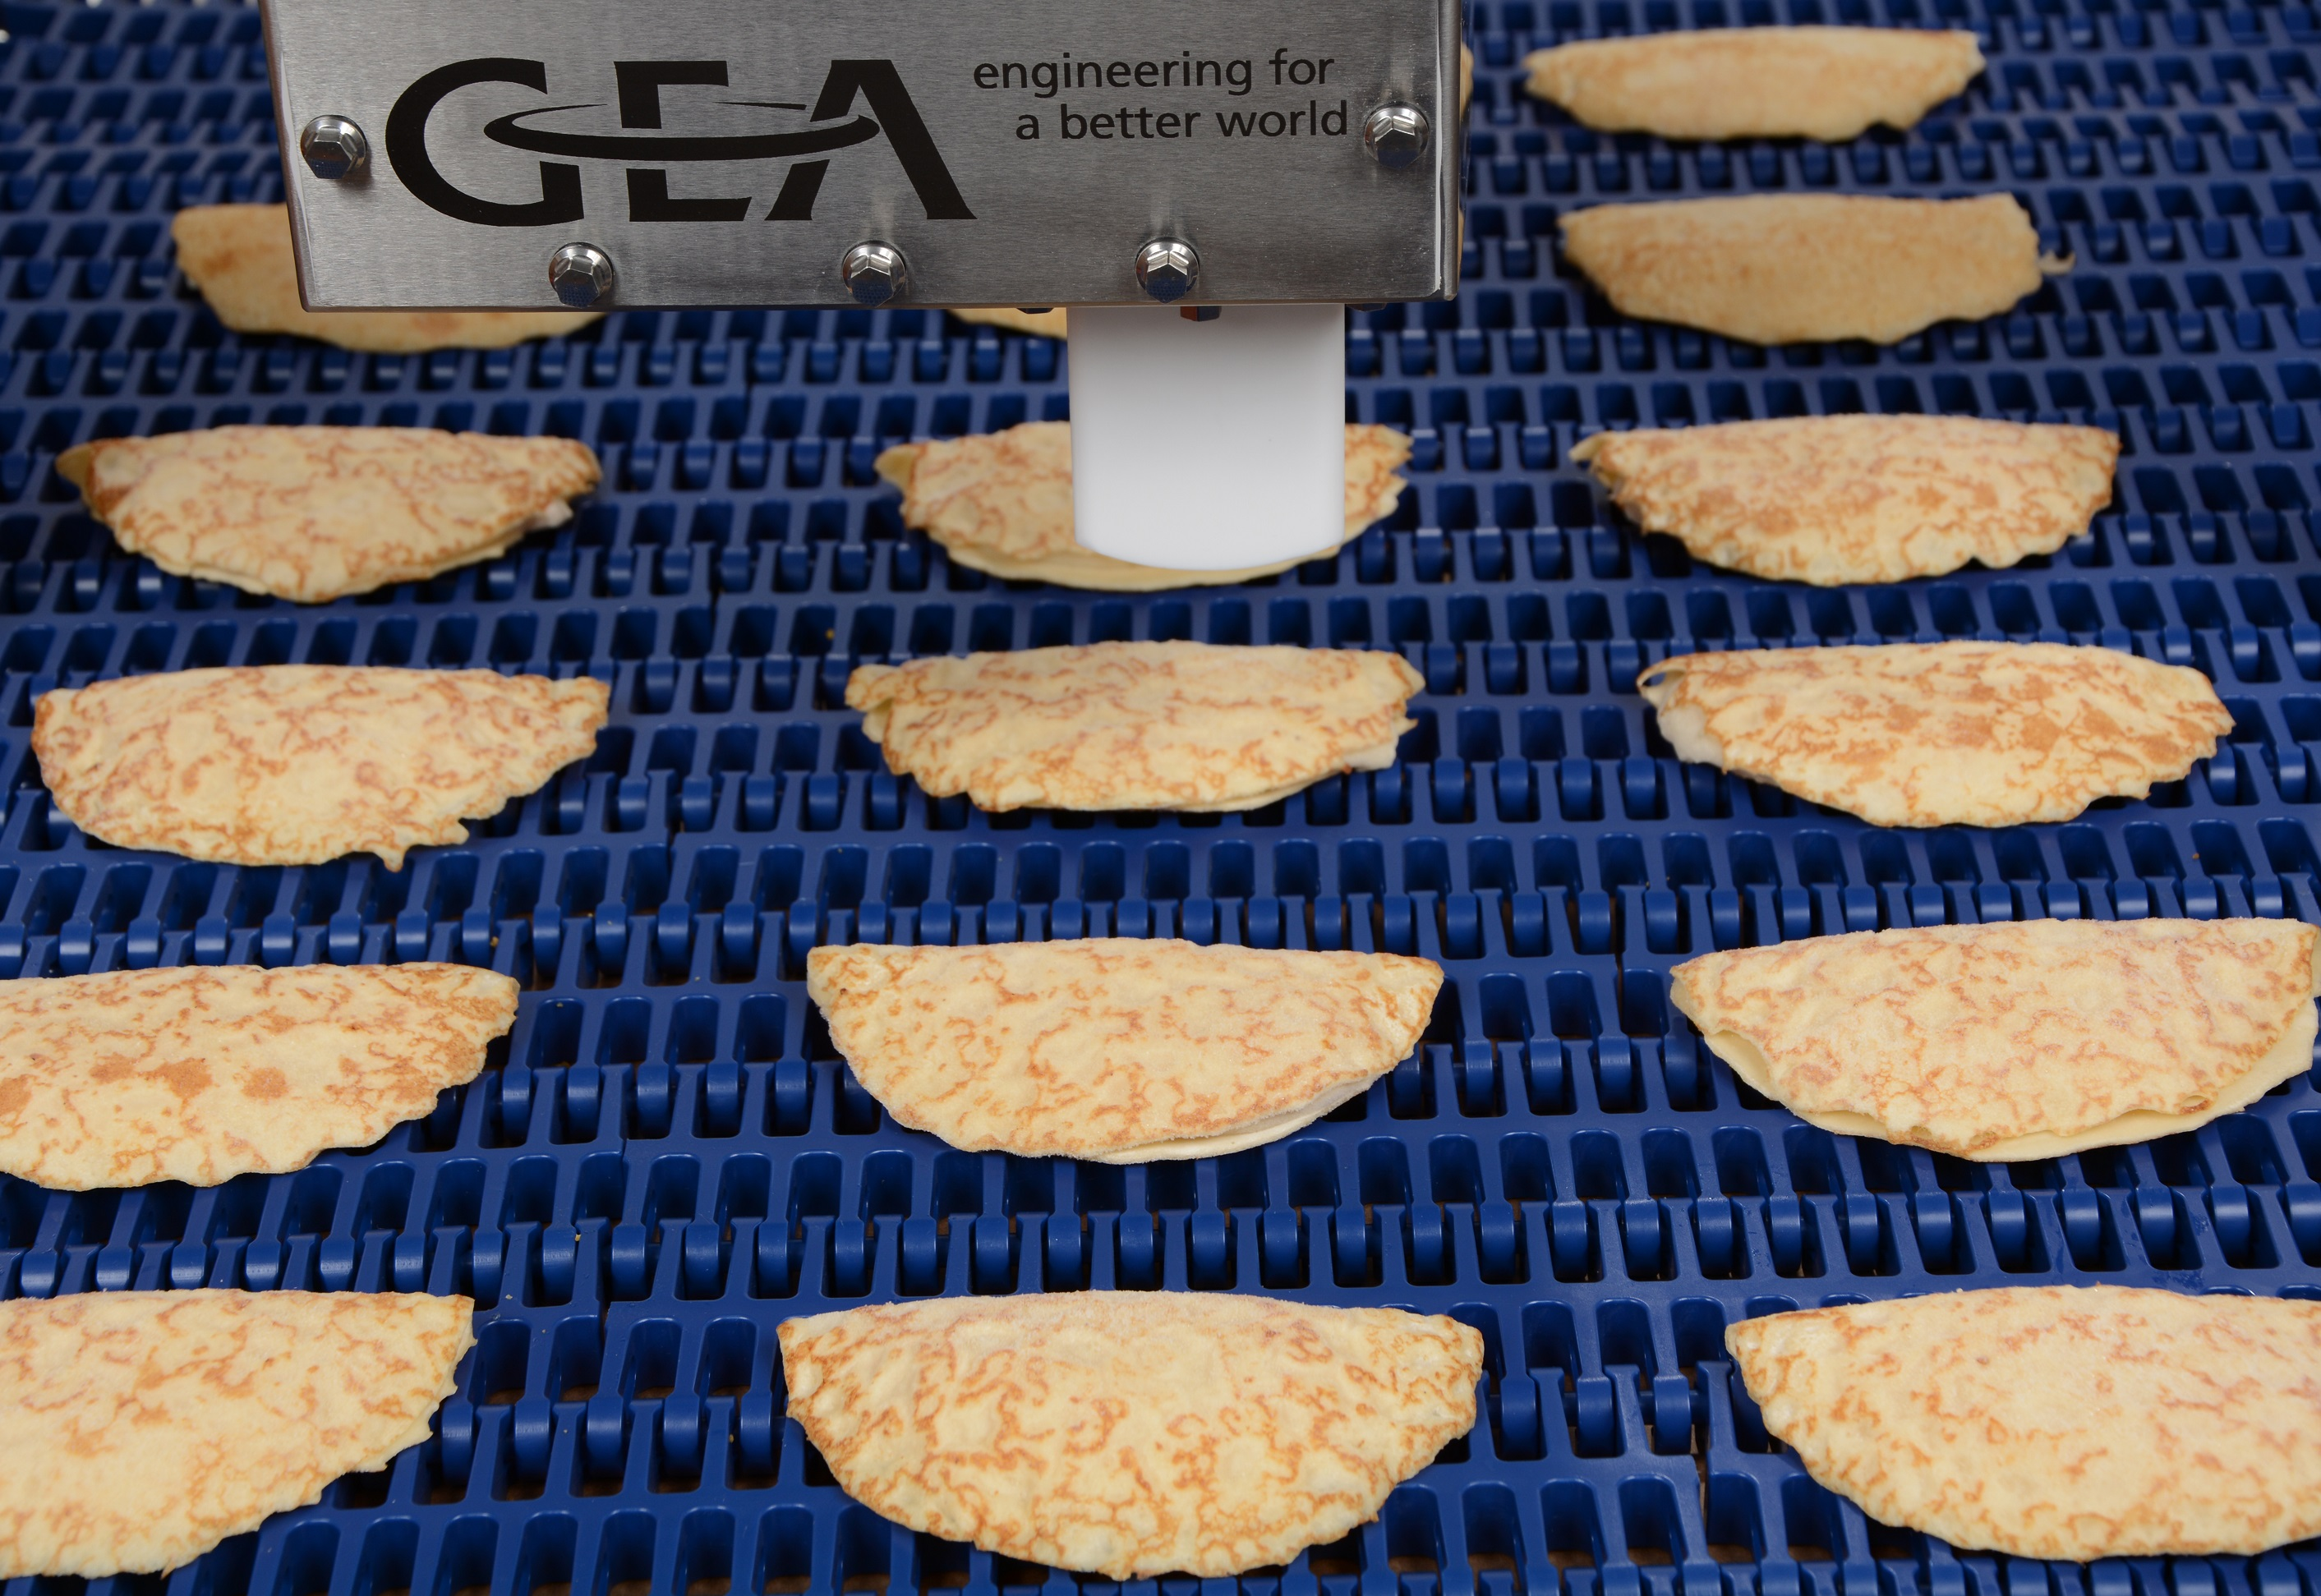 GEA shows how to produce delicacies effectively at iba 2018